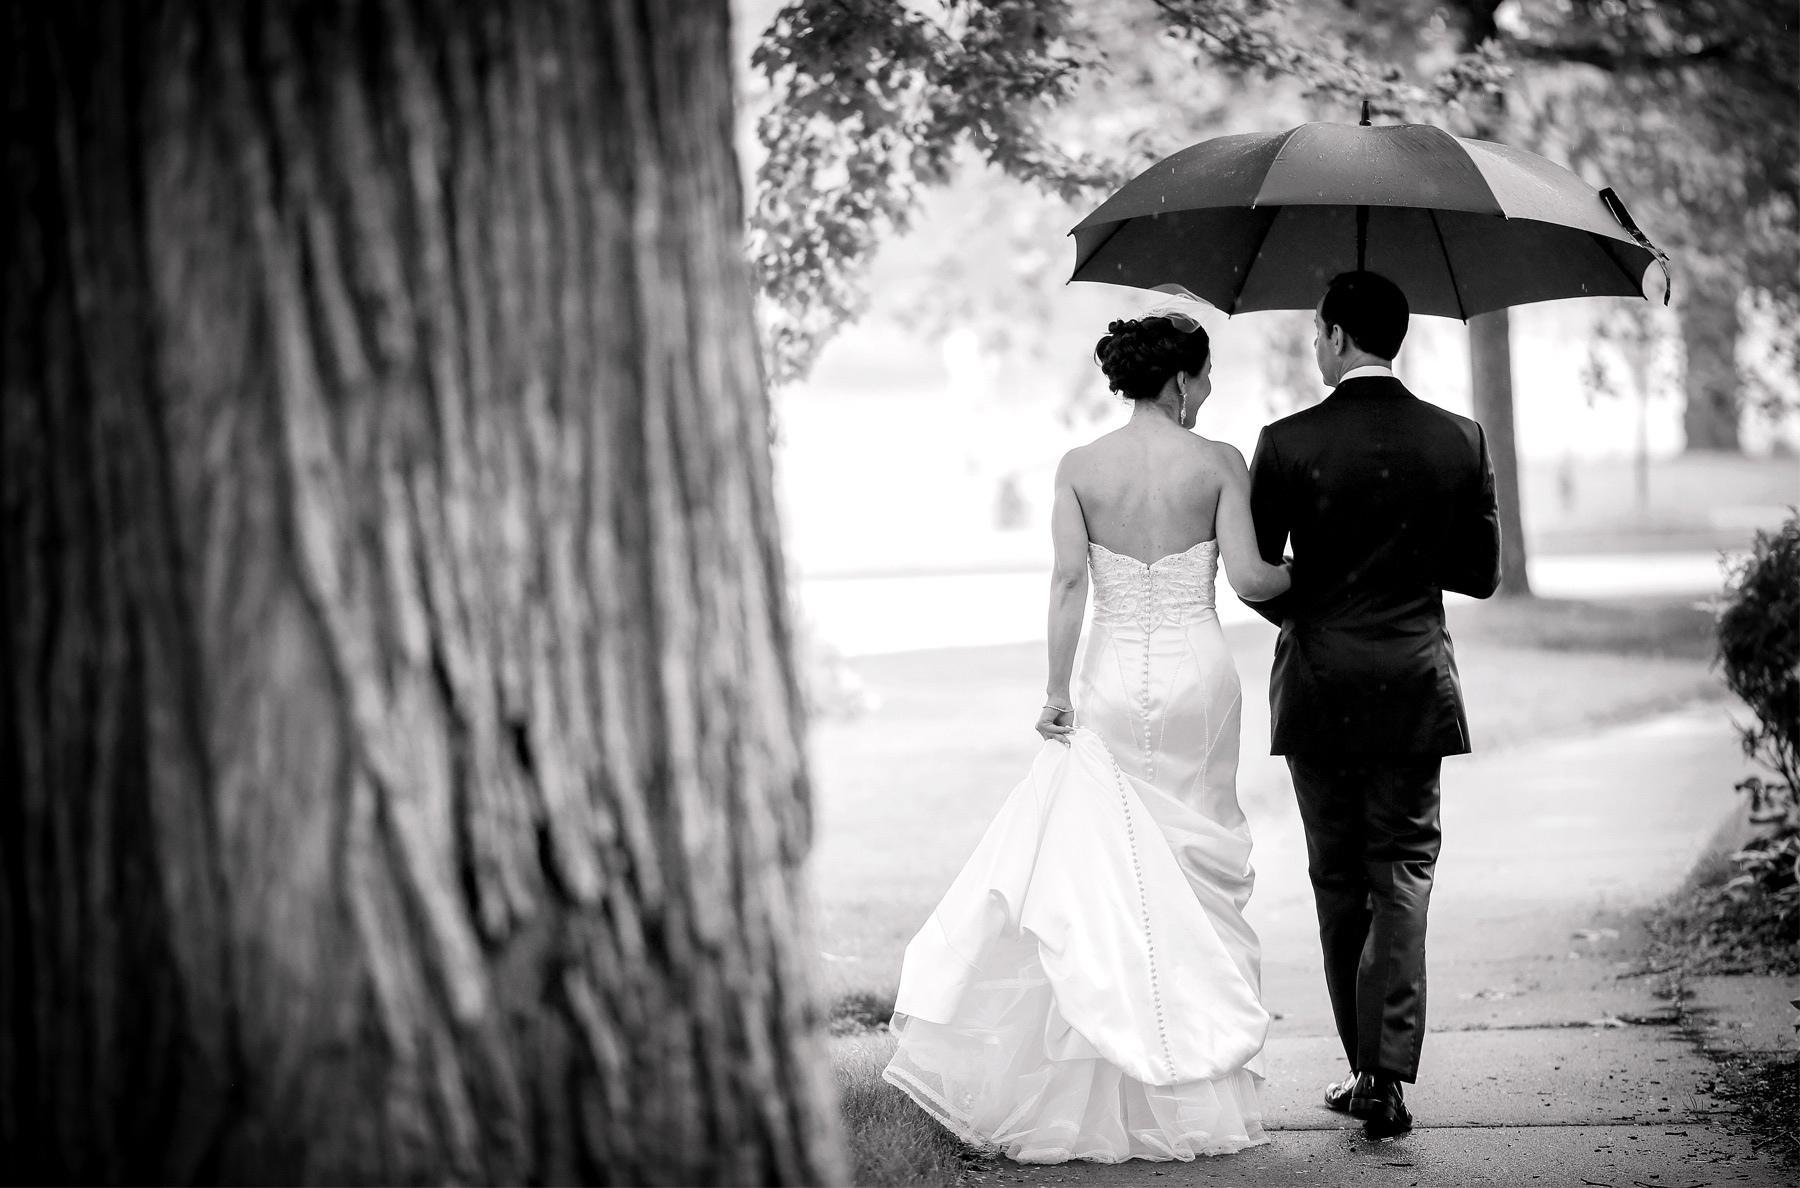 07-Minneapolis-Minnesota-Wedding-Photography-by-Vick-Photography-First-Look-Raining-Wedding-Leticia-&-Jay.jpg